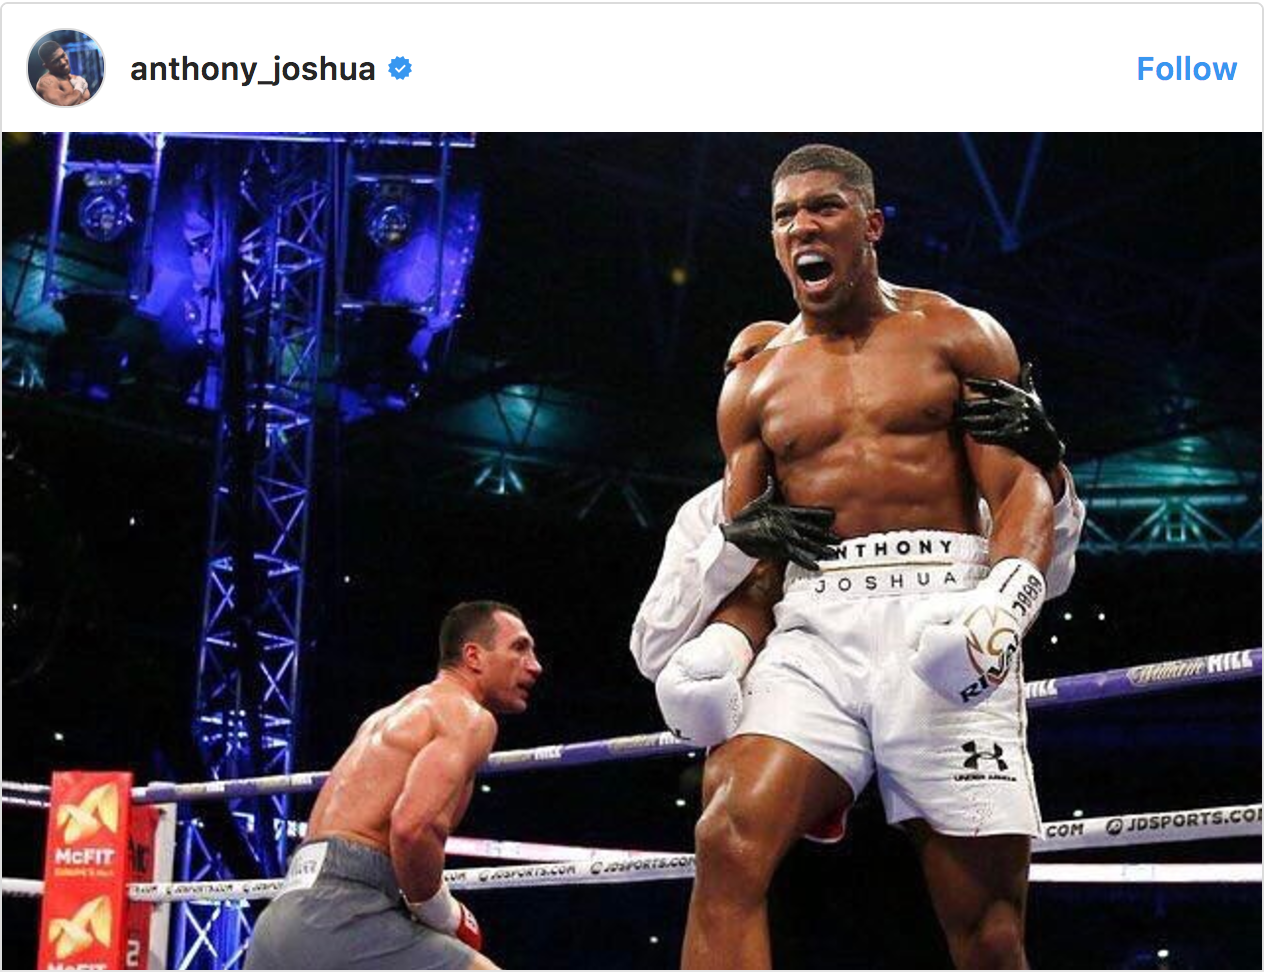 Anthony Joshua's Instagram millions following victory